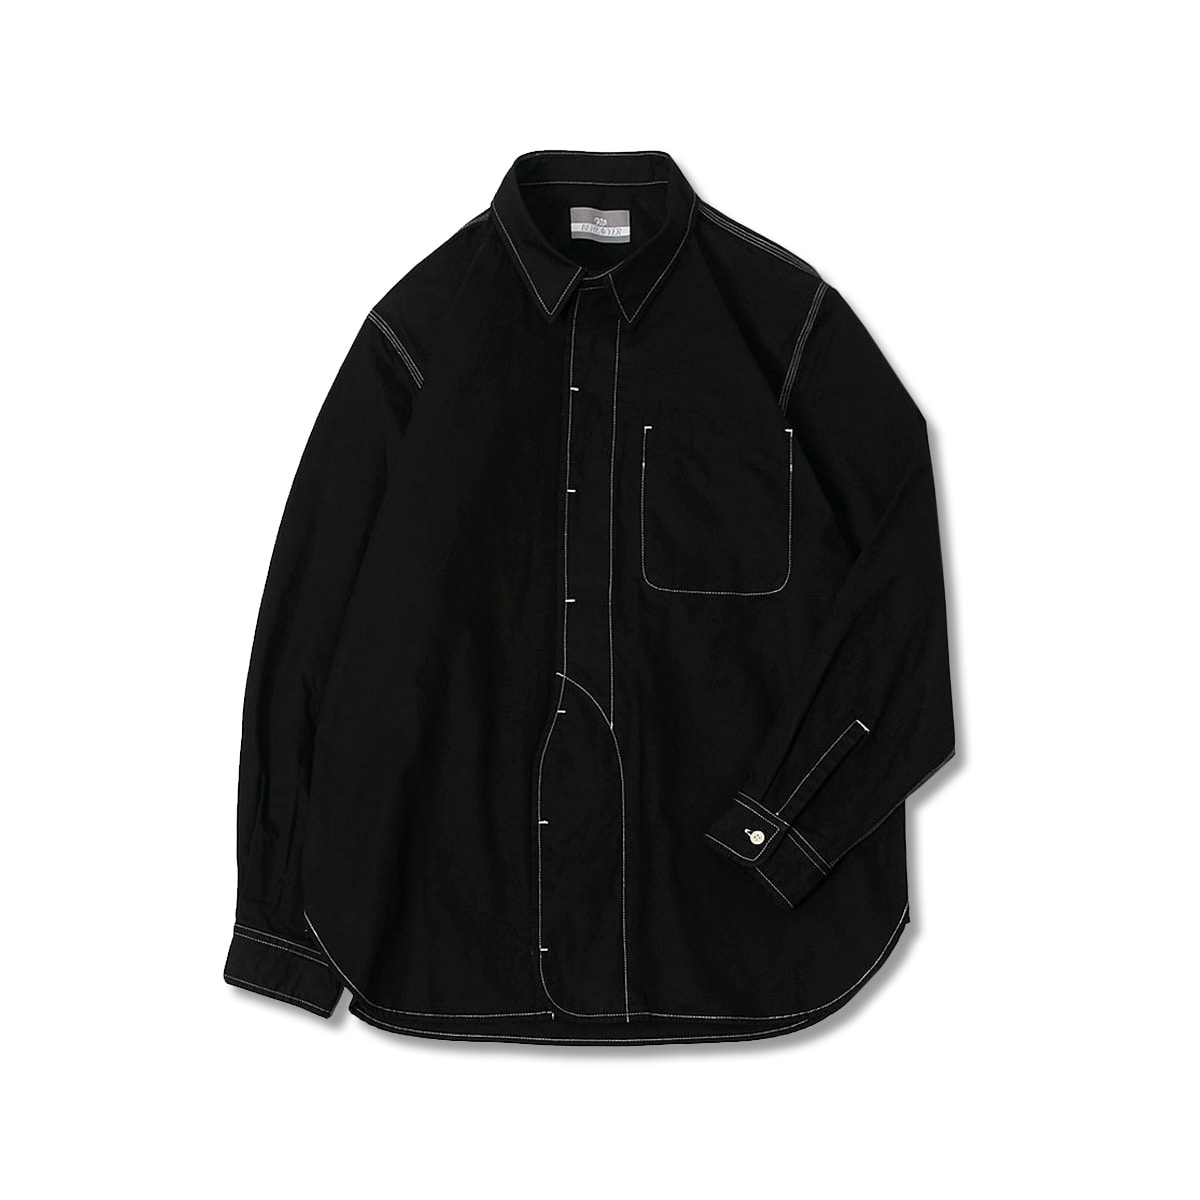 [BEHEAVYER] 1 1/2 SHIRT 'BLACK'